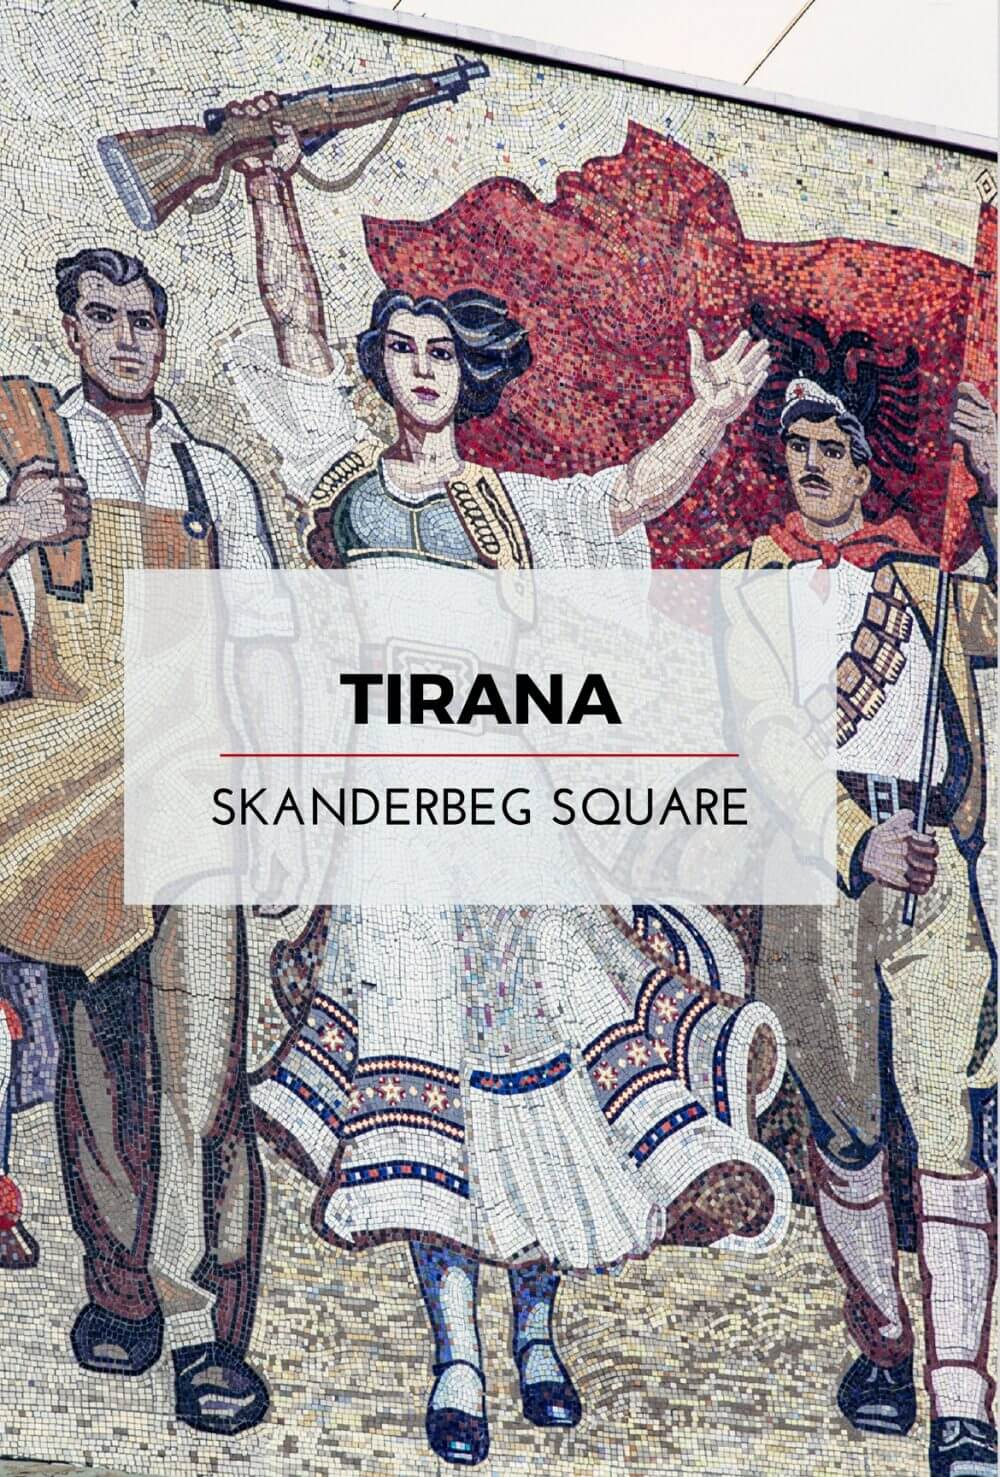 Tirana's Skanderbeg Square: All Shiny and New